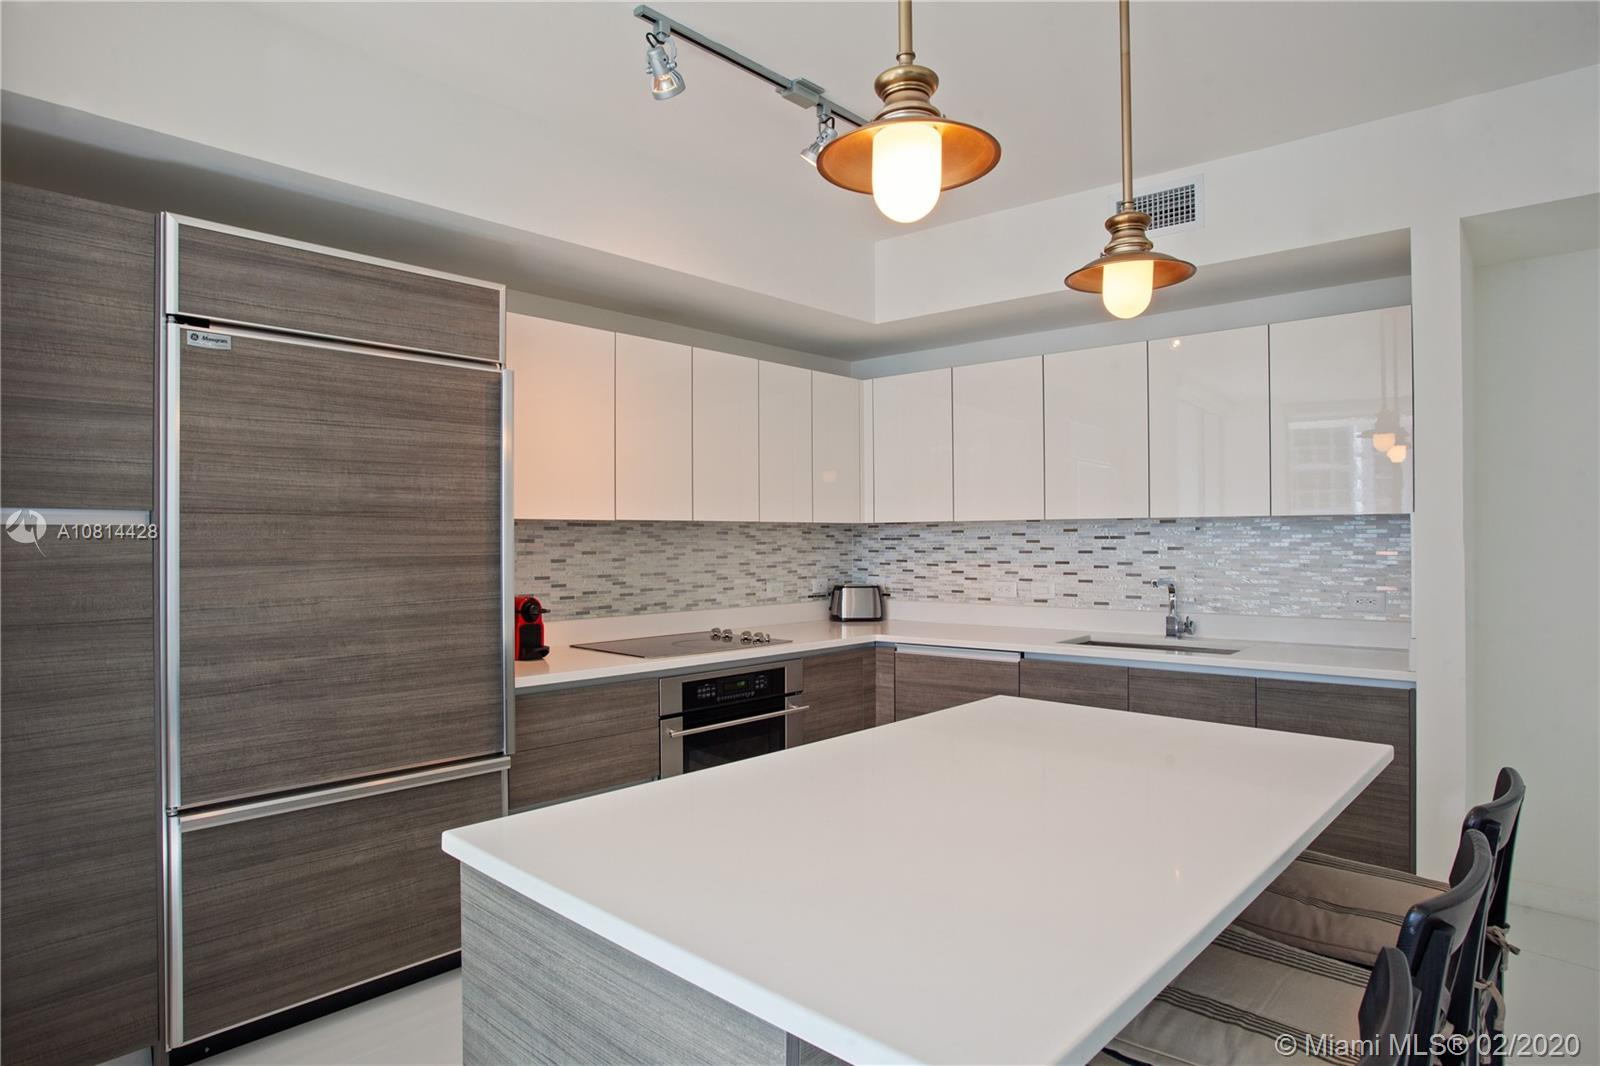 Spacious 2 beds 2 baths corner unit. Wraparound balcony w/ water and city views. White porcelain floors throughout, window treatments. Unit comes with 1 storage room. Luxe amenities, including a rooftop pool and sundeck (located on the 42nd floor); state-of-the-art fitness center; club room with bar and lounge, billiards table, catering kitchen, and multimedia facilities; health spa with men's and women's steam room and sauna; theater with state-of-the-art audio/visual equipment; private cabanas; 24-hour concierge and security; and 24-hour valet parking. Tenant occupied until 6/14/2021